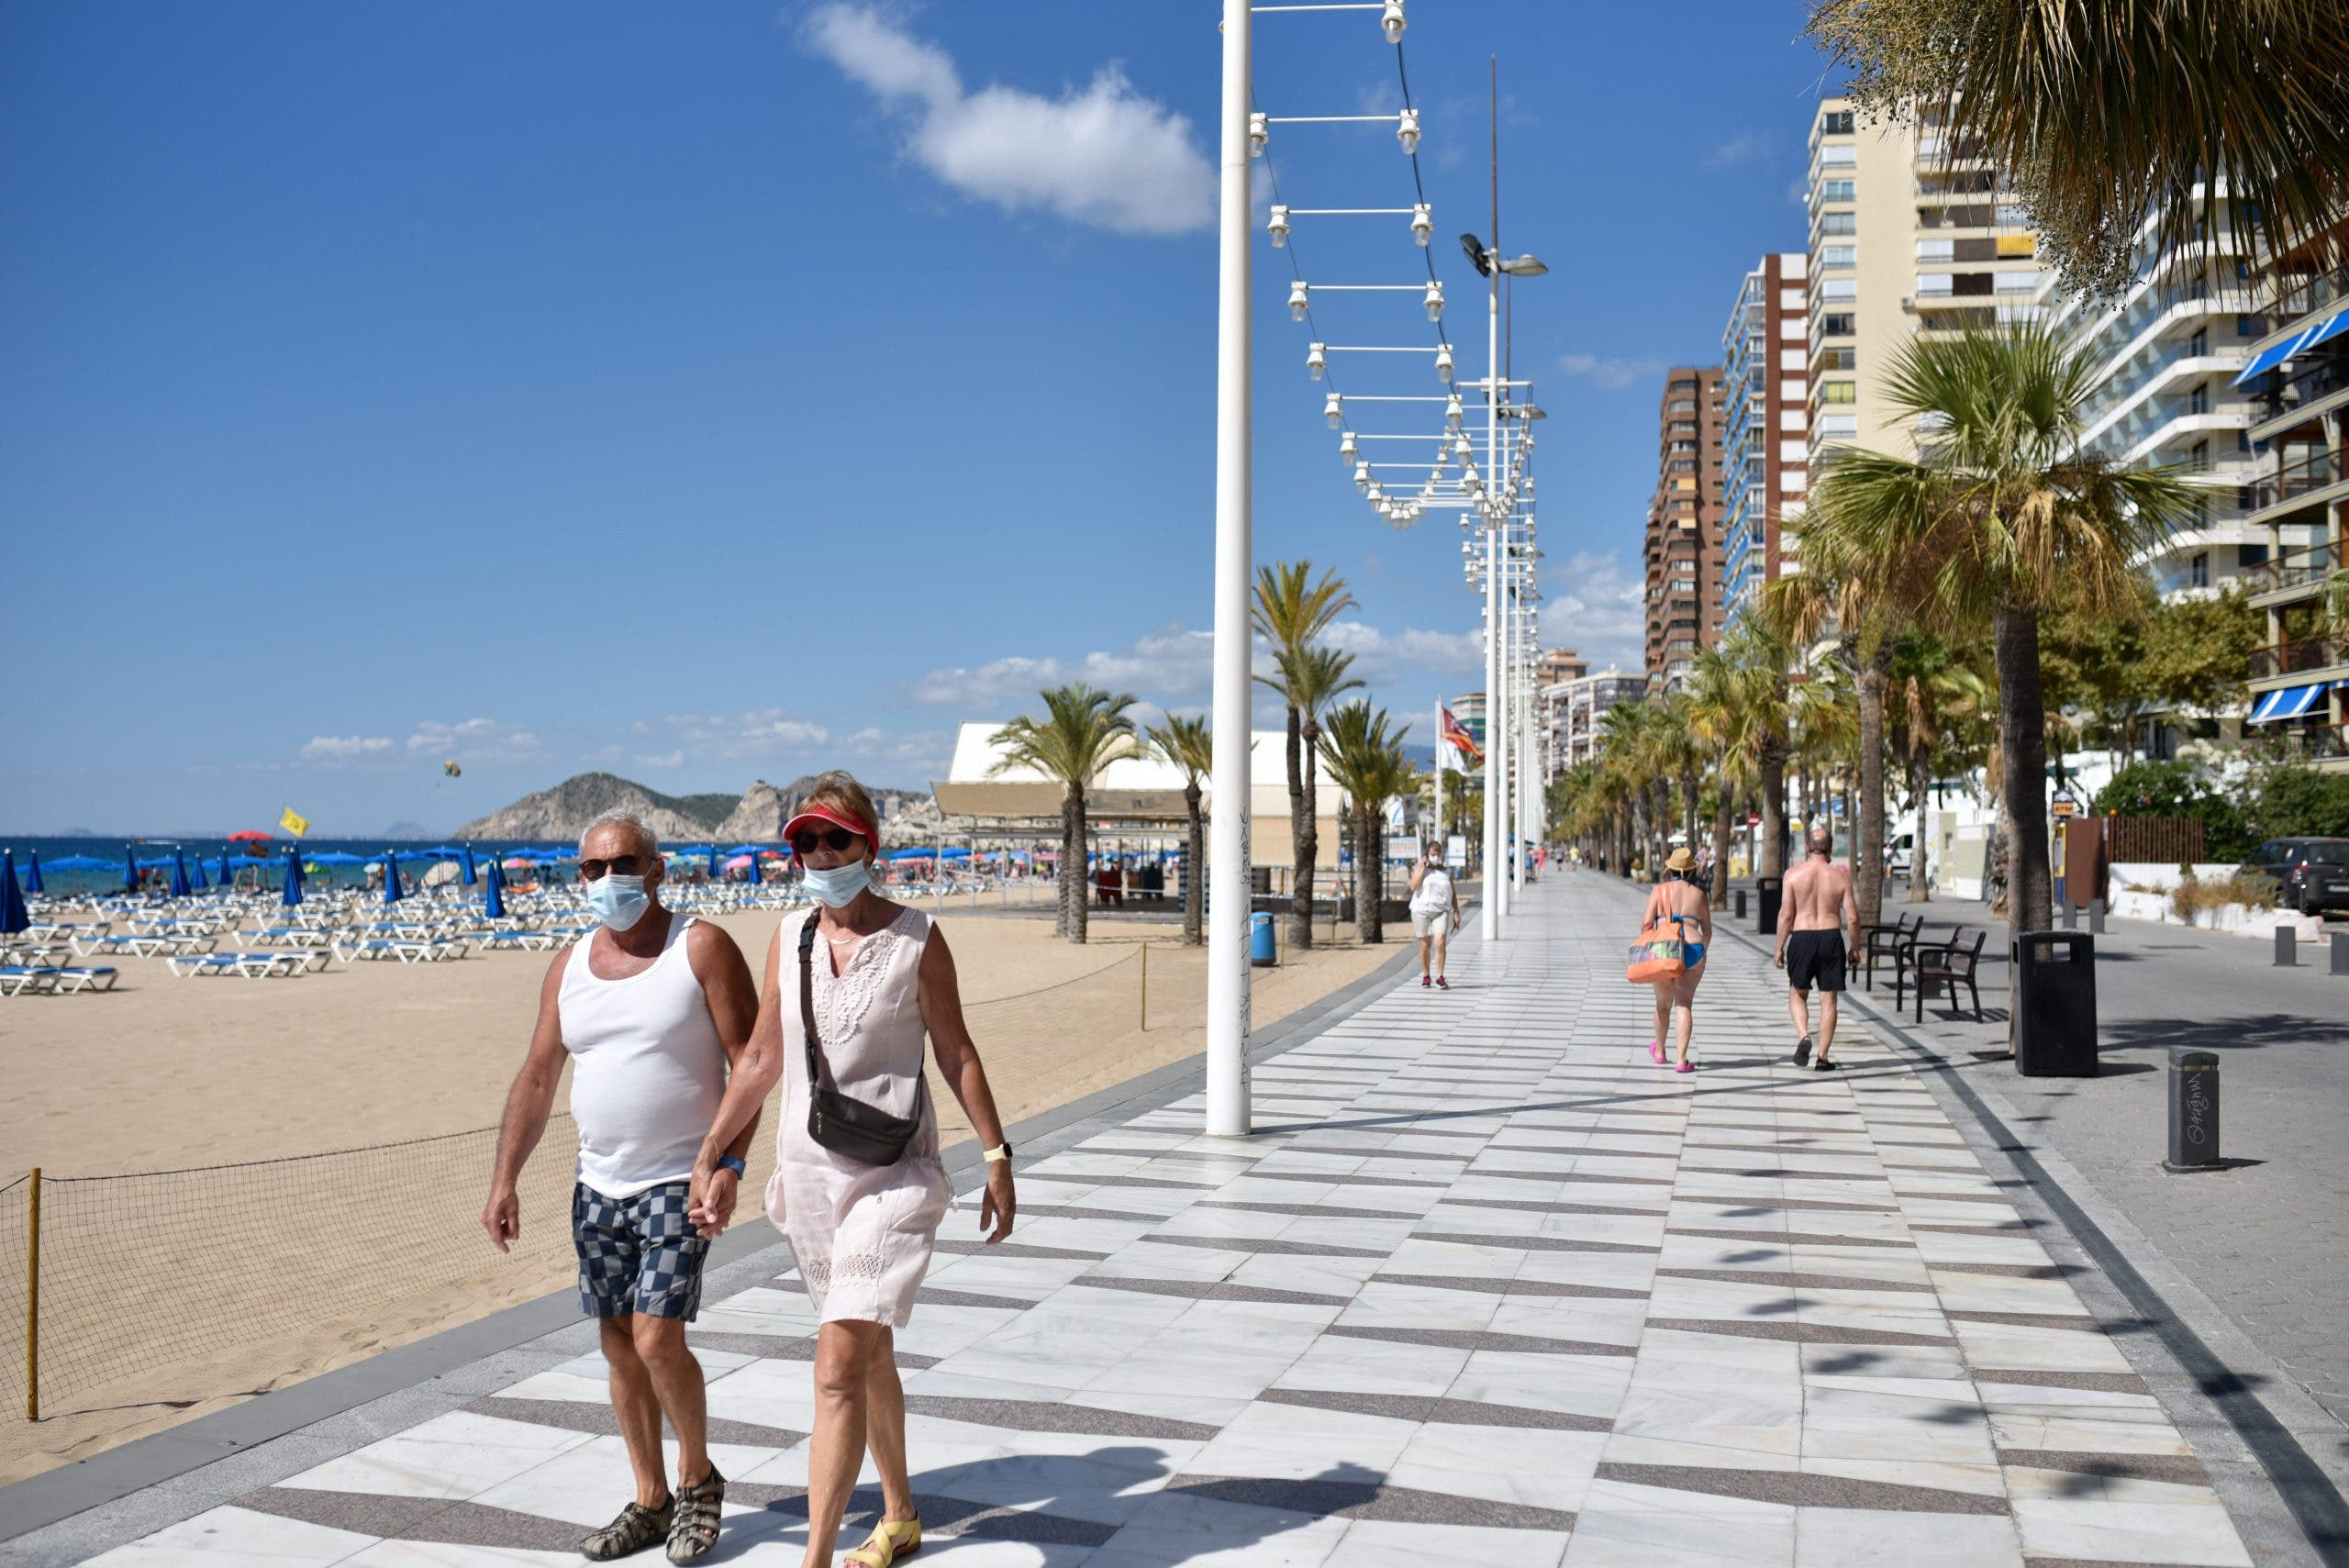 Daily Life Amid Coronavirus (covid 19) Crisis In Benidorm, Spain 09 Sep 2020